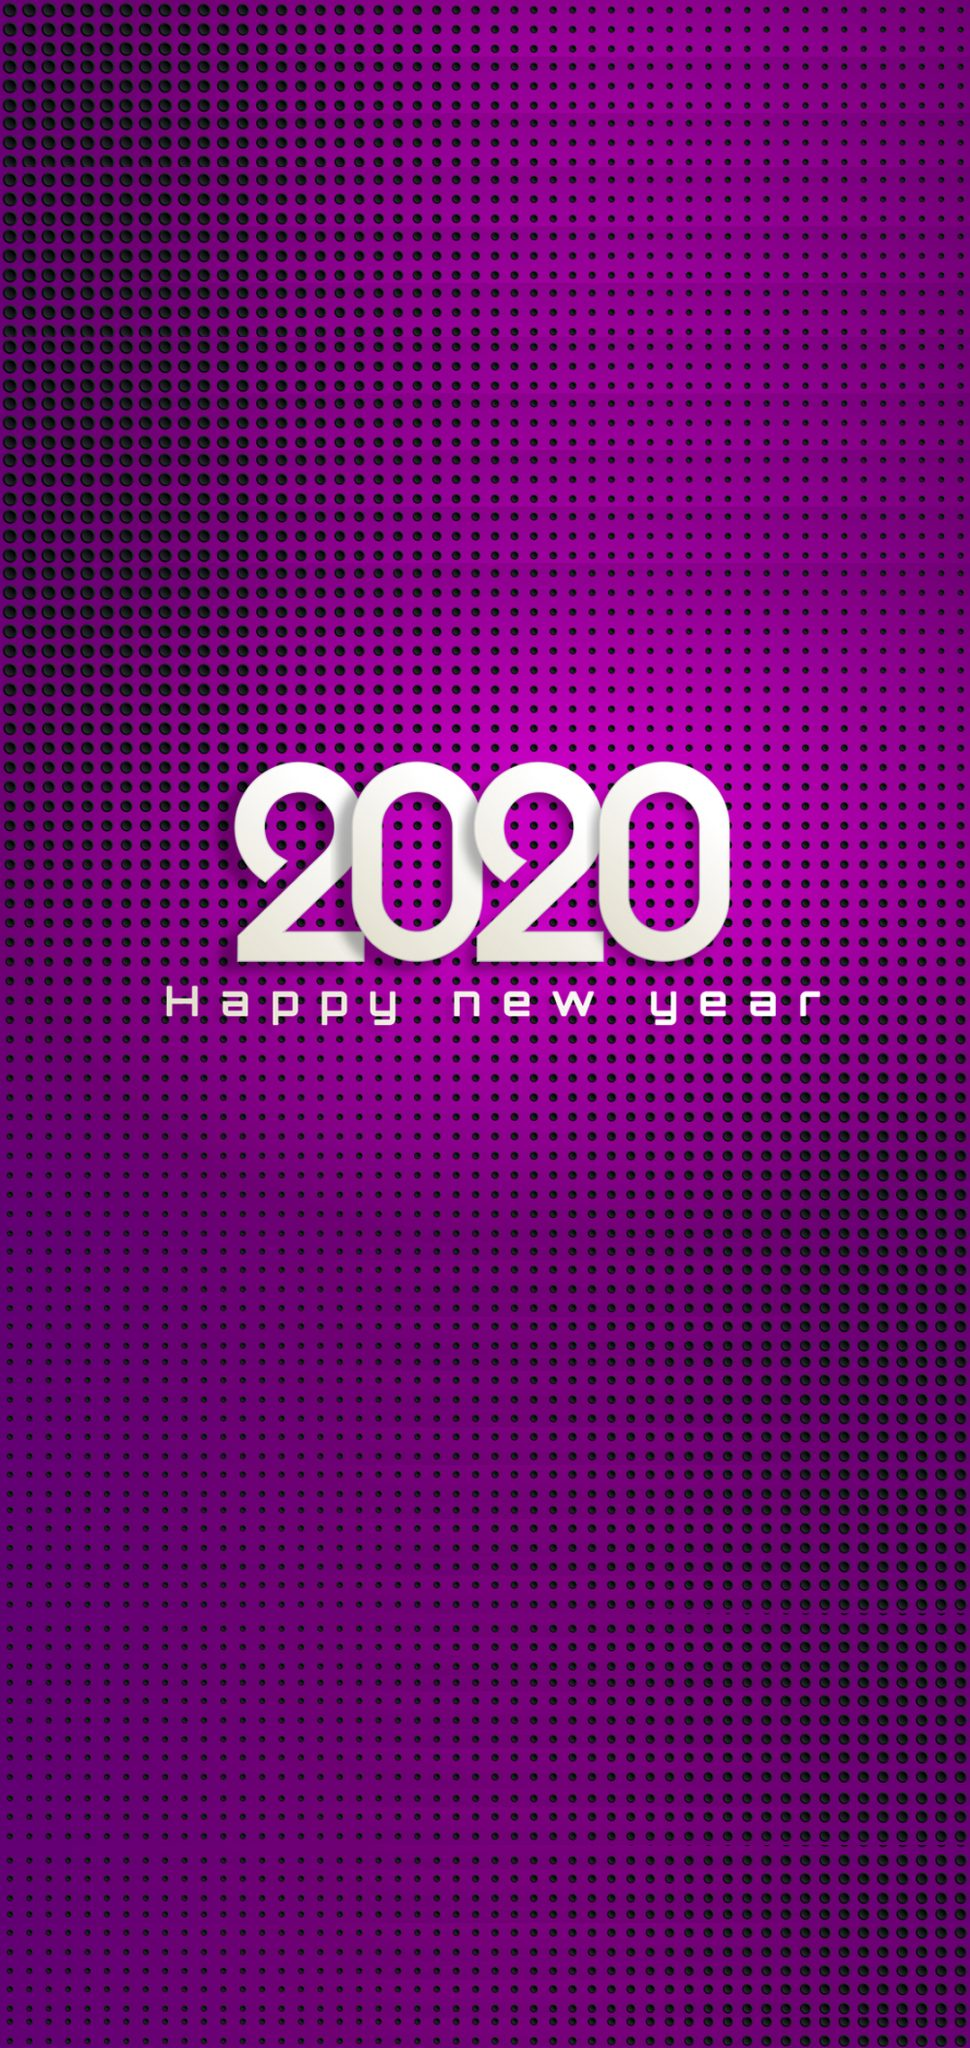 Happy New Year 2020 Wallpaper Download , HD Wallpaper & Backgrounds